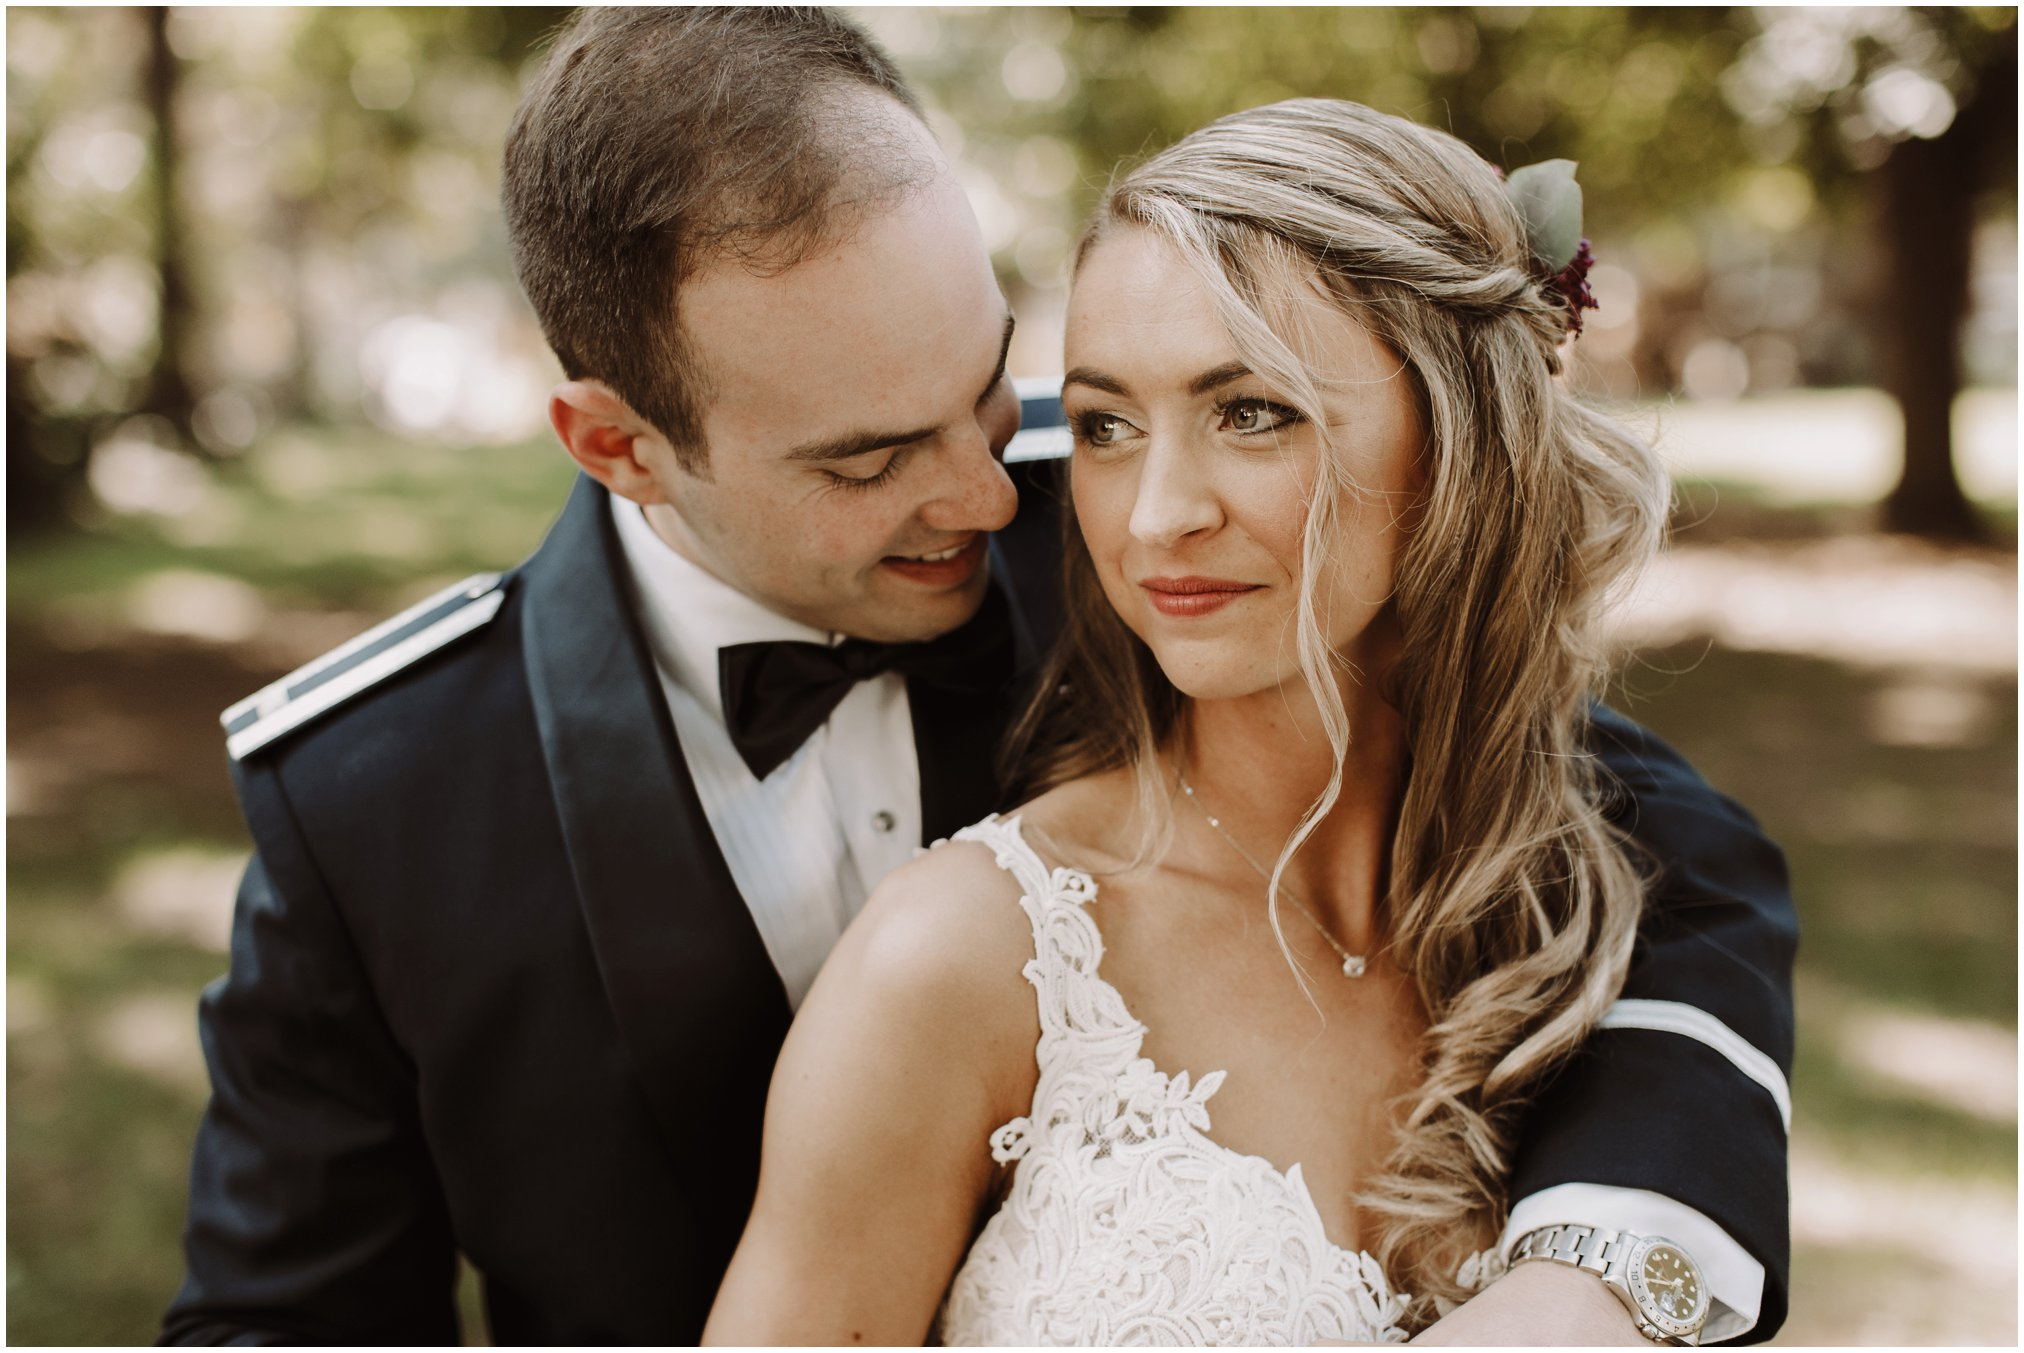 Air Force Bride and Groom Portraits in Annapolis